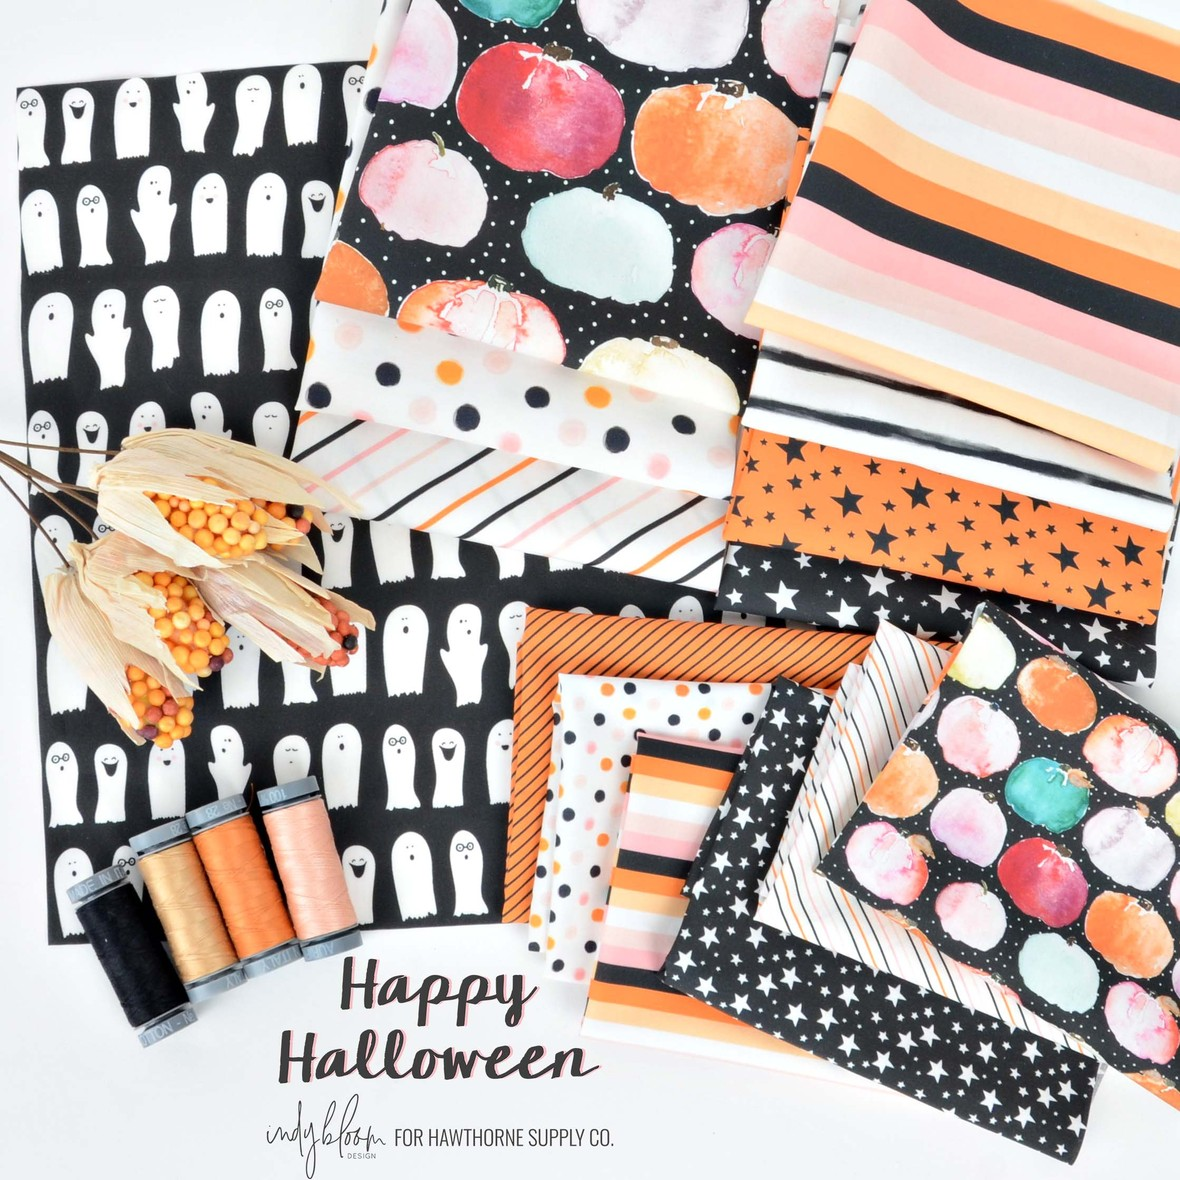 Happy Halloween Fabric from Indy Bloom at Hawthorne Supply Co